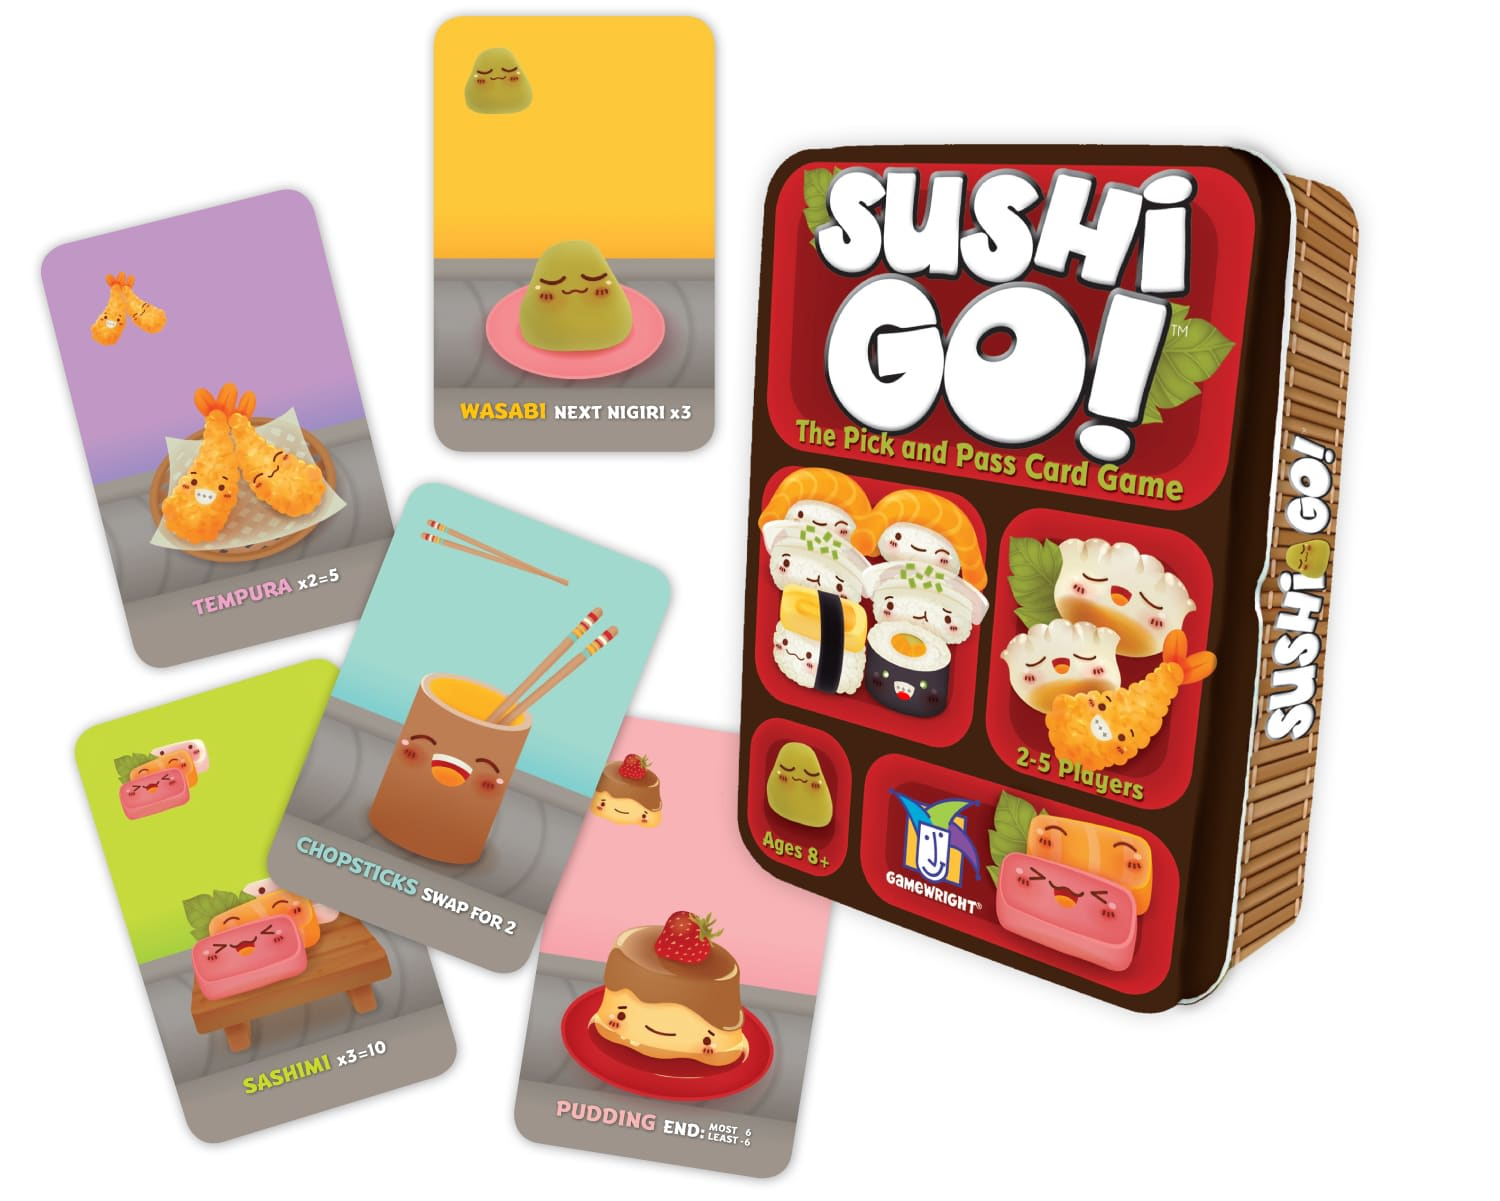 The Sushi Go! box and some of the cards.